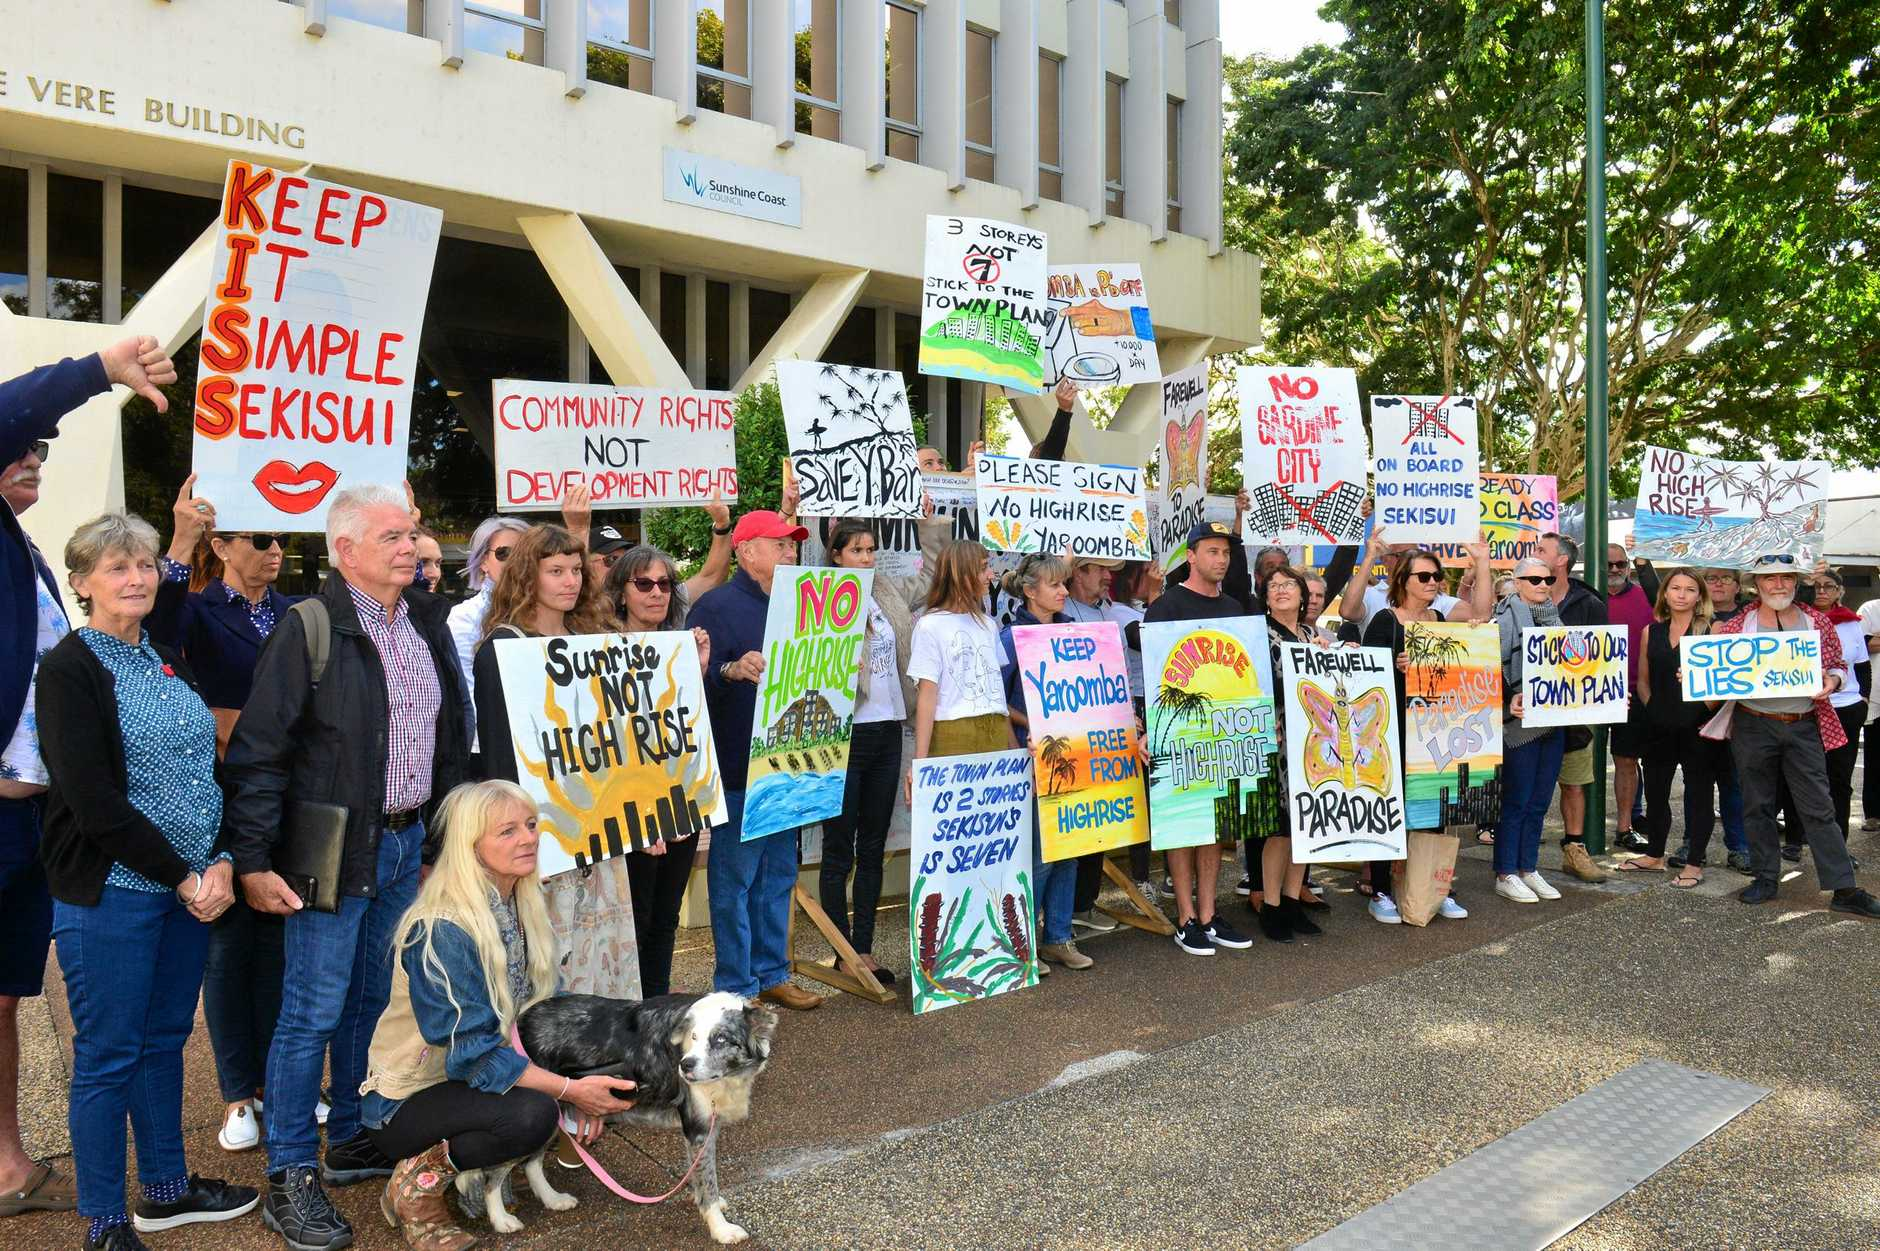 Special Council Meeting in Nambour. yaroomba Beach Development Application. Council vote yes on Sekisui House's yaroomba proposal. Protestors outside Council Chambers.